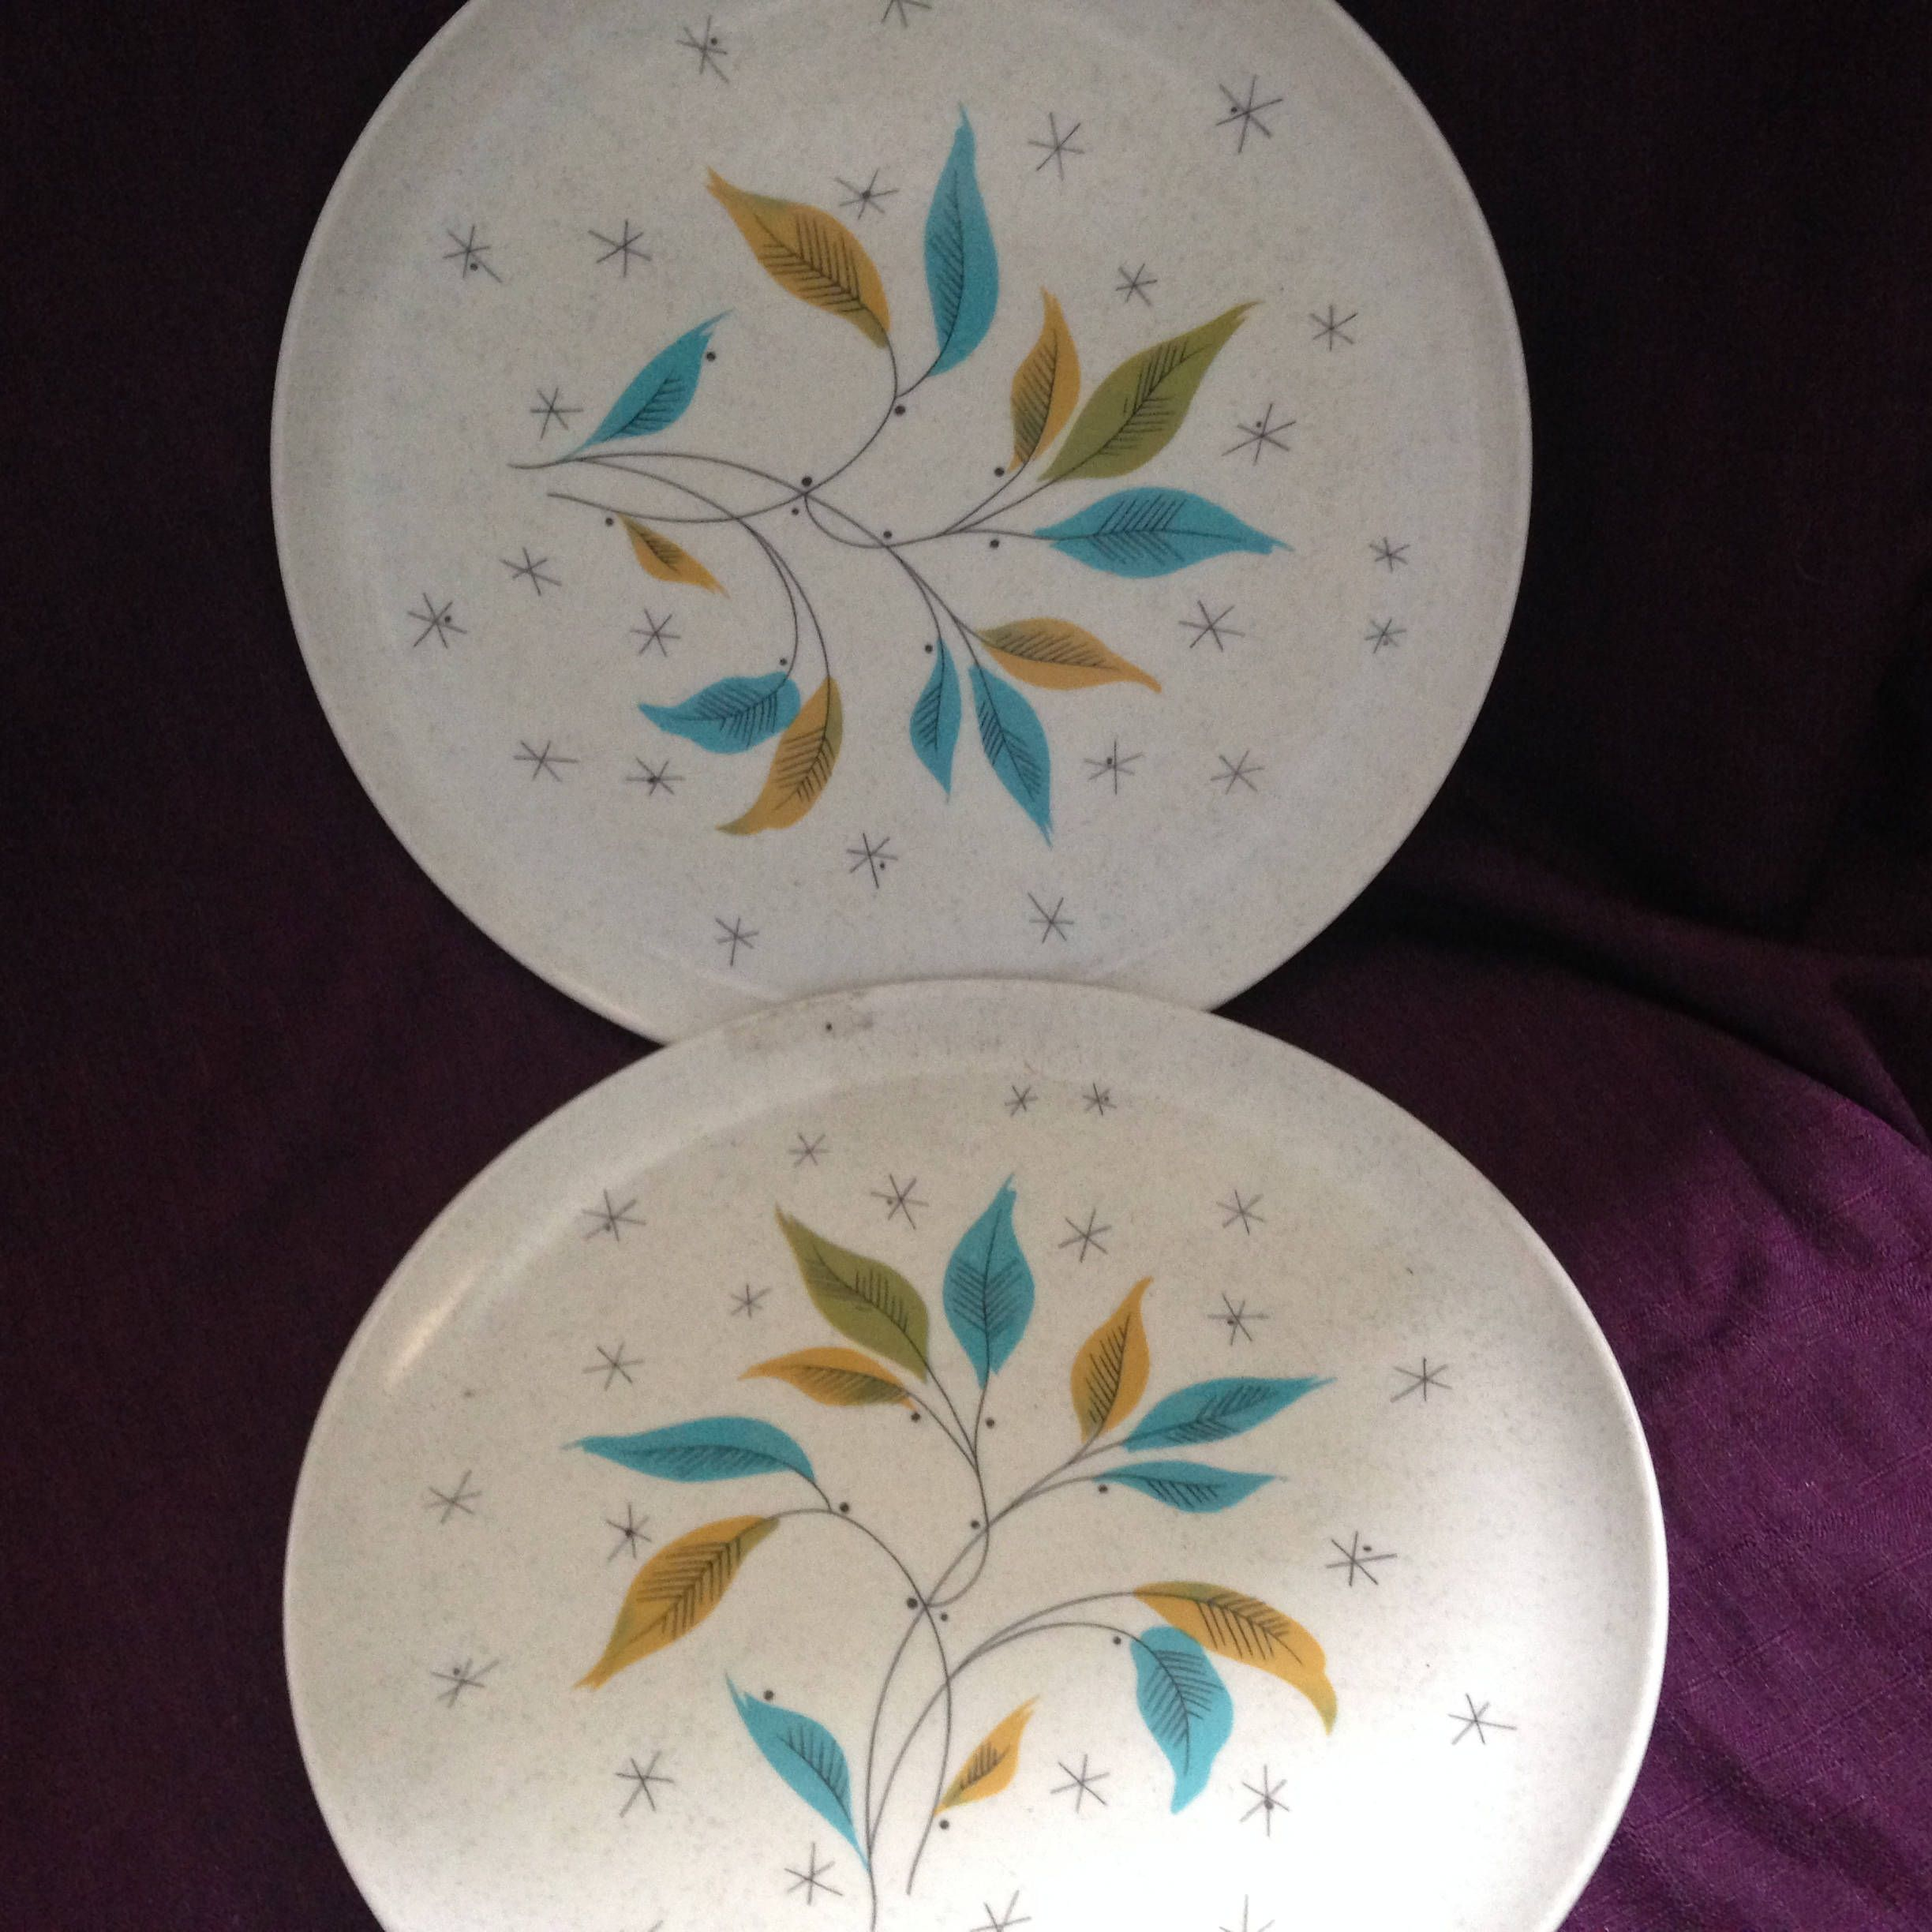 Automic Eames Era 2 Dinner Plates Aqua Blue Gold Green Leaf 2 Maplex Melmac dinner plates - At Everything Vintage Shipping is On Us & Automic Eames Era 2 Dinner Plates Aqua Blue Gold Green Leaf 2 Maplex ...